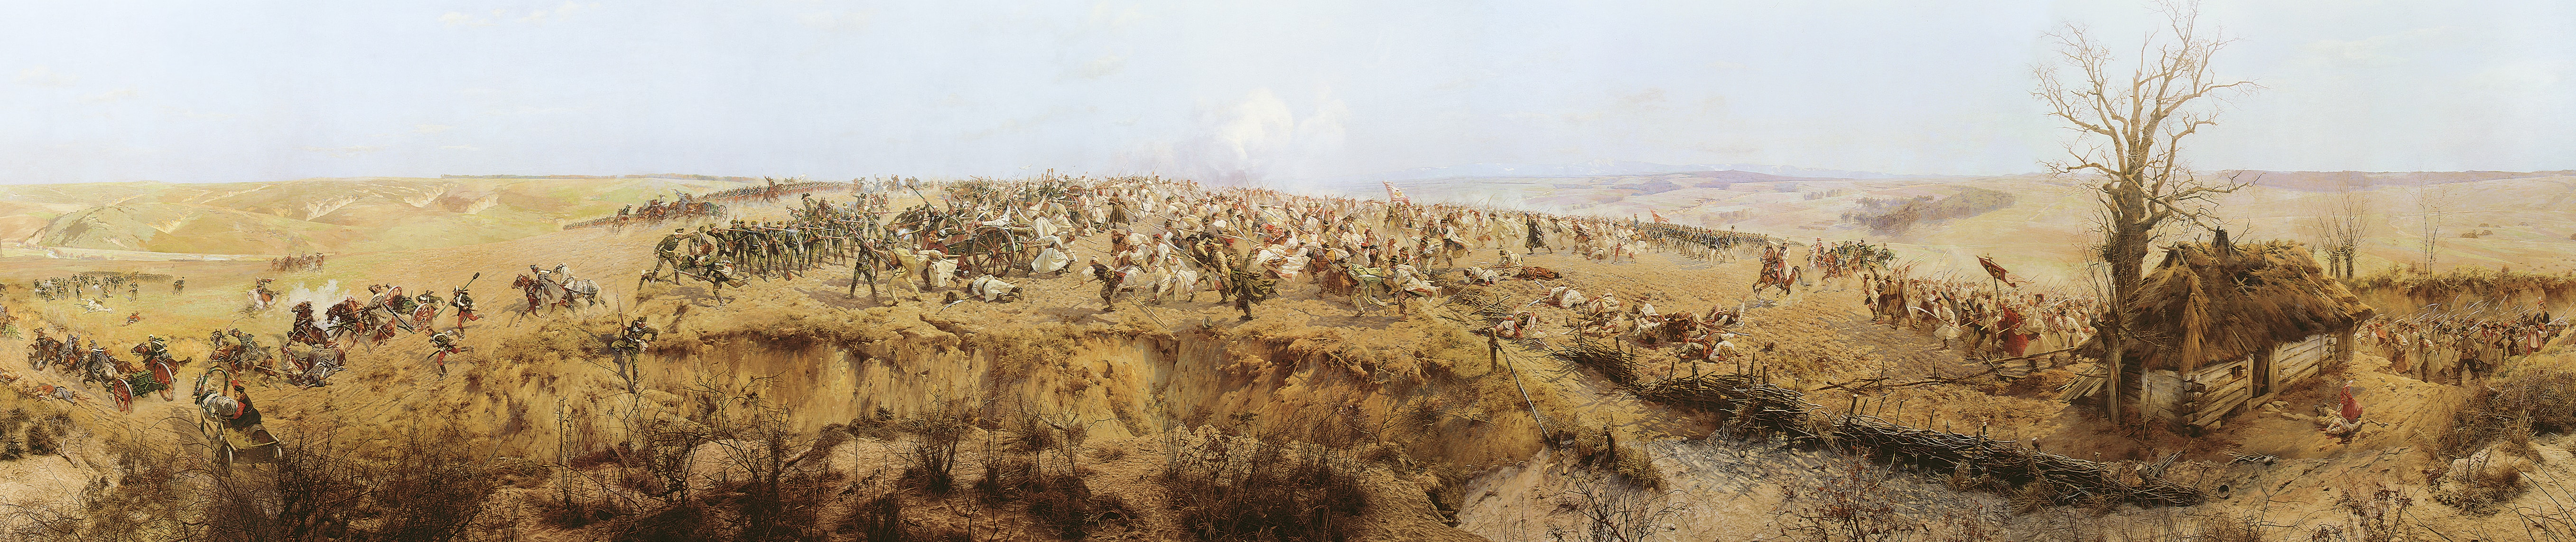 The idea of painting the panorama of the historic battle came from Jan Styka (1858-1925), a well-known artist from Lwów [now Lviv in Ukraine], who invited Wojciech Kossak (1856-1942), an eminent painter of battle scenes, to collaborate on his project. They were assisted by Ludwig Boller, Tadeusz Popiel, Zygunt Rozwadowski, Teodor Axentowicz, Włodzimierz Tetmajer, Wincenty Wodzinowski and Michał Sozański. The artists were mainly concerned with commemorating the national traditions on the occasion of the 100th anniversary of the Kościuszko Insurrection – the victorious battle of Racławice on 4 April 1794, fought by the insurgents (including the famous scythe-wielding troops) led by General Tadeusz Kościuszko (1746-1817) against the invading Russian troops commanded by General Alexander Tormasov.